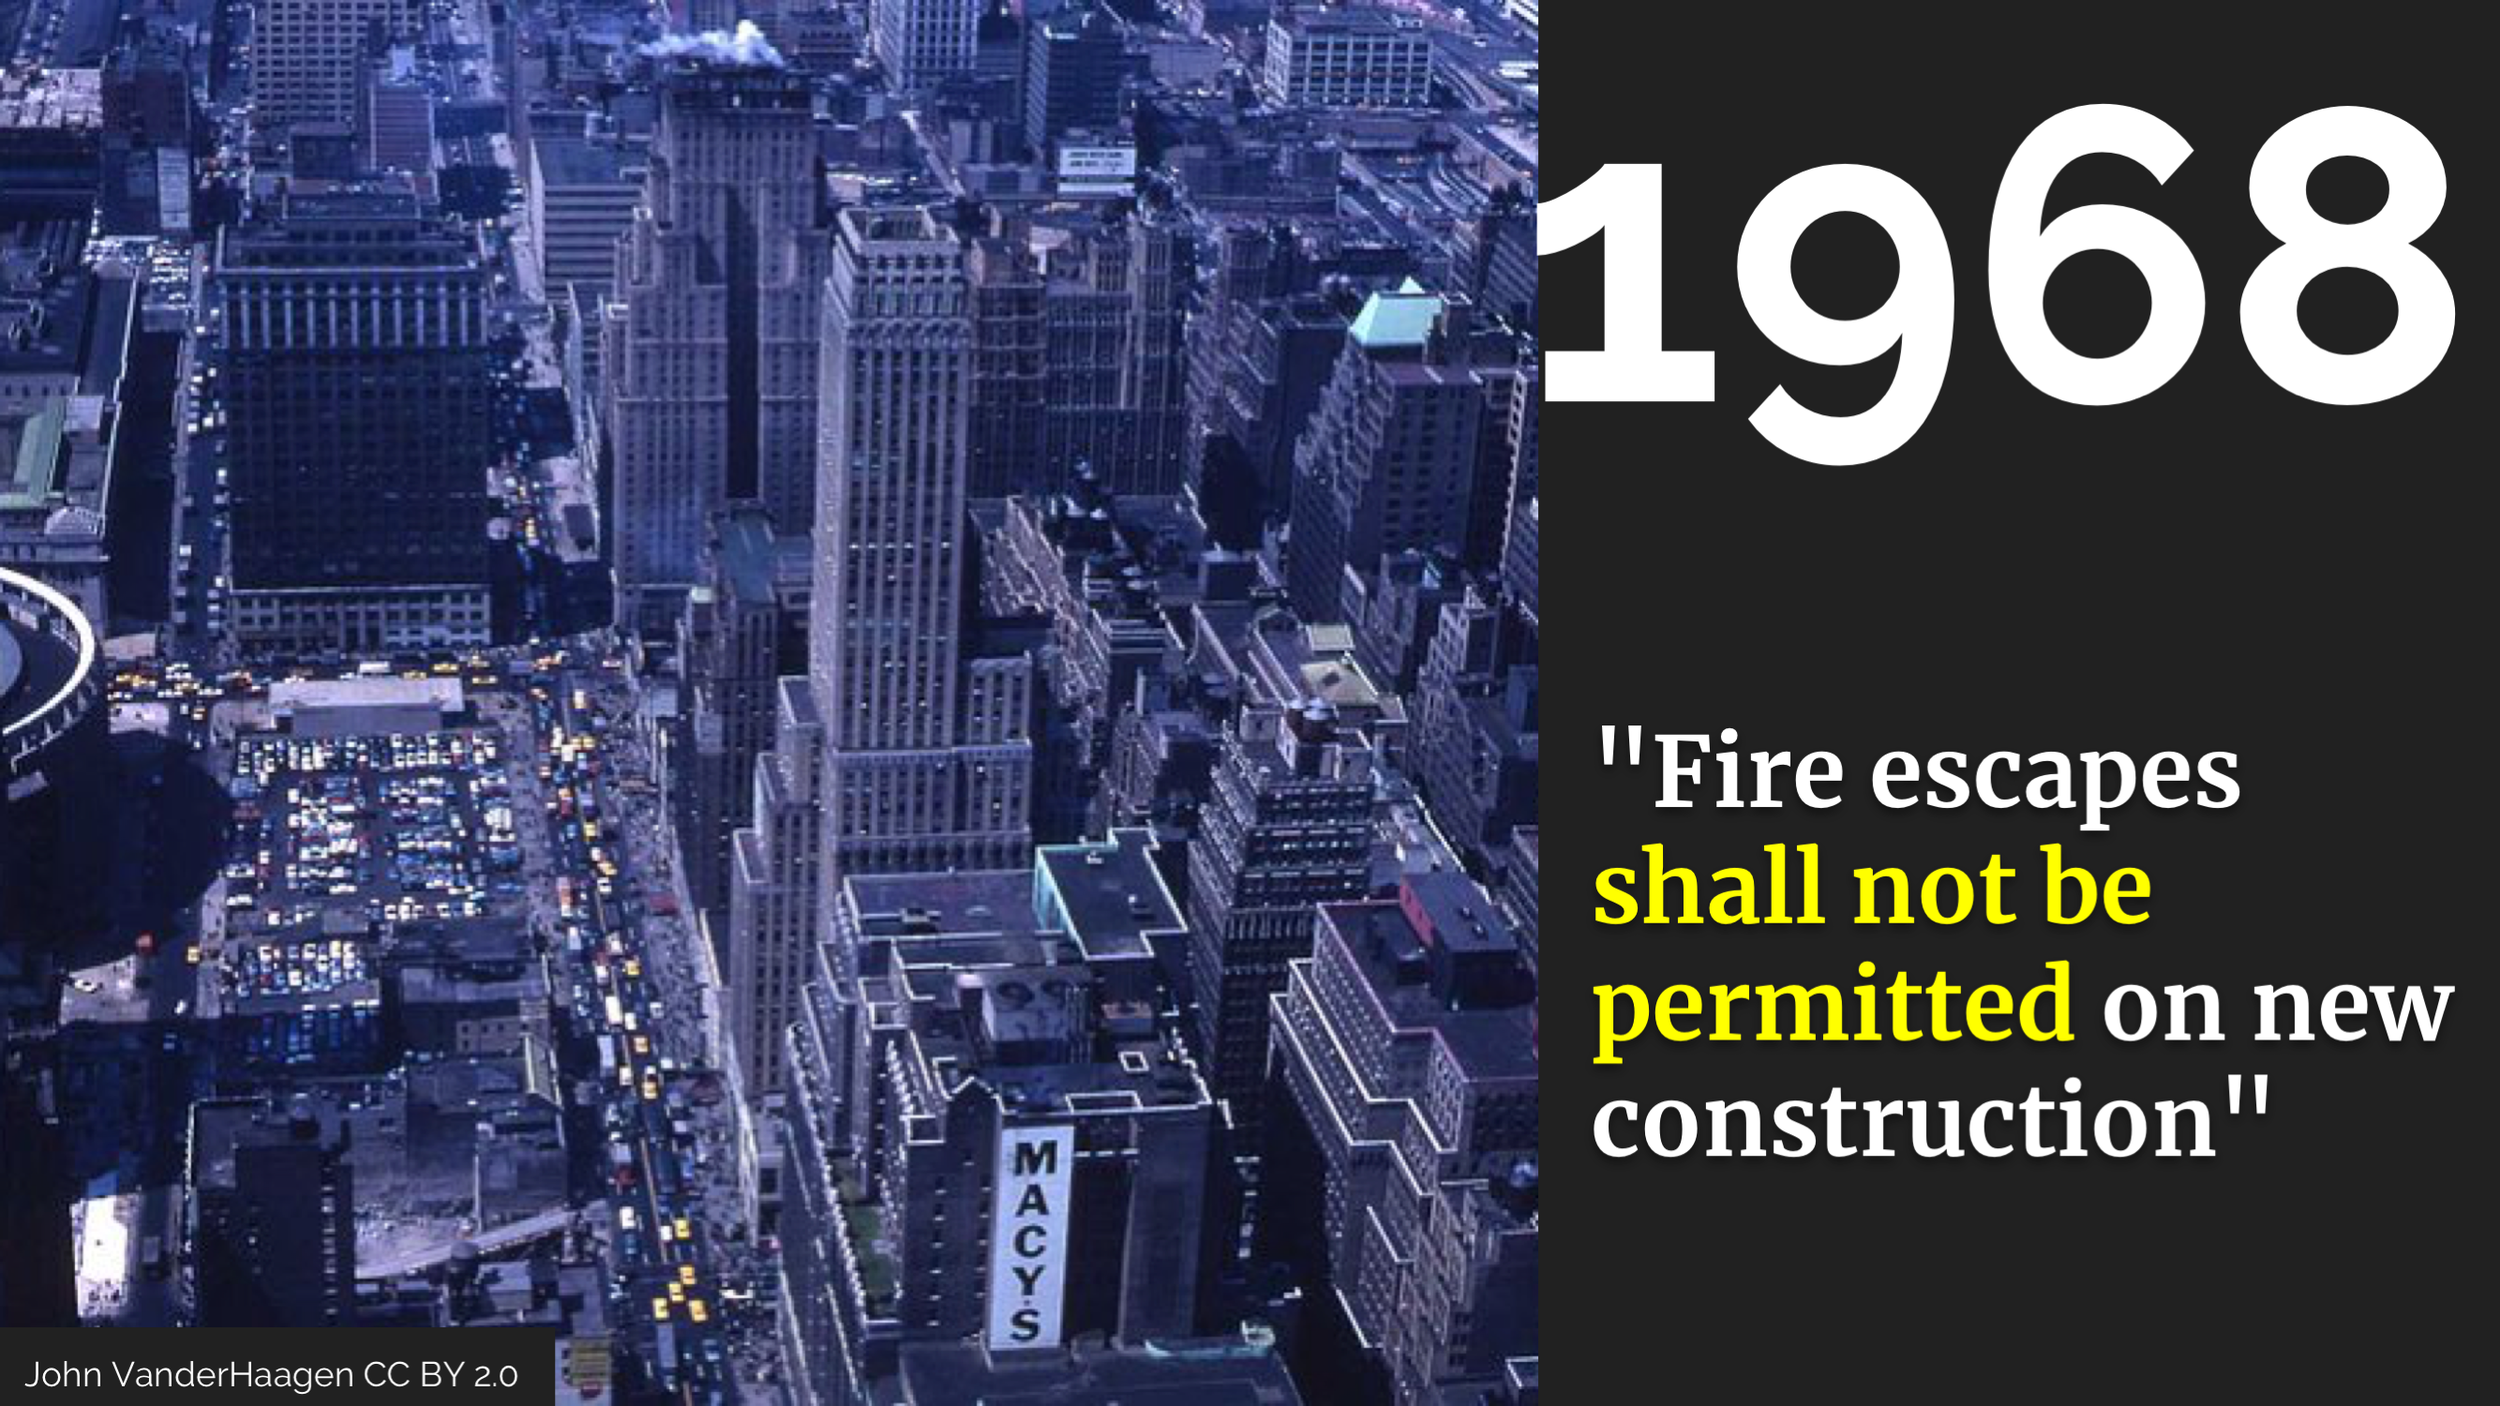 "The idea of building better buildings gained traction and in 1968 fire escapes stopped being allowed at all. The code still says ""Fire escapes shall not be permitted on new construction"".     The 1968 code also required sprinklers for hotels and high-rise office buildings, but not nightclubs or residential buildings."